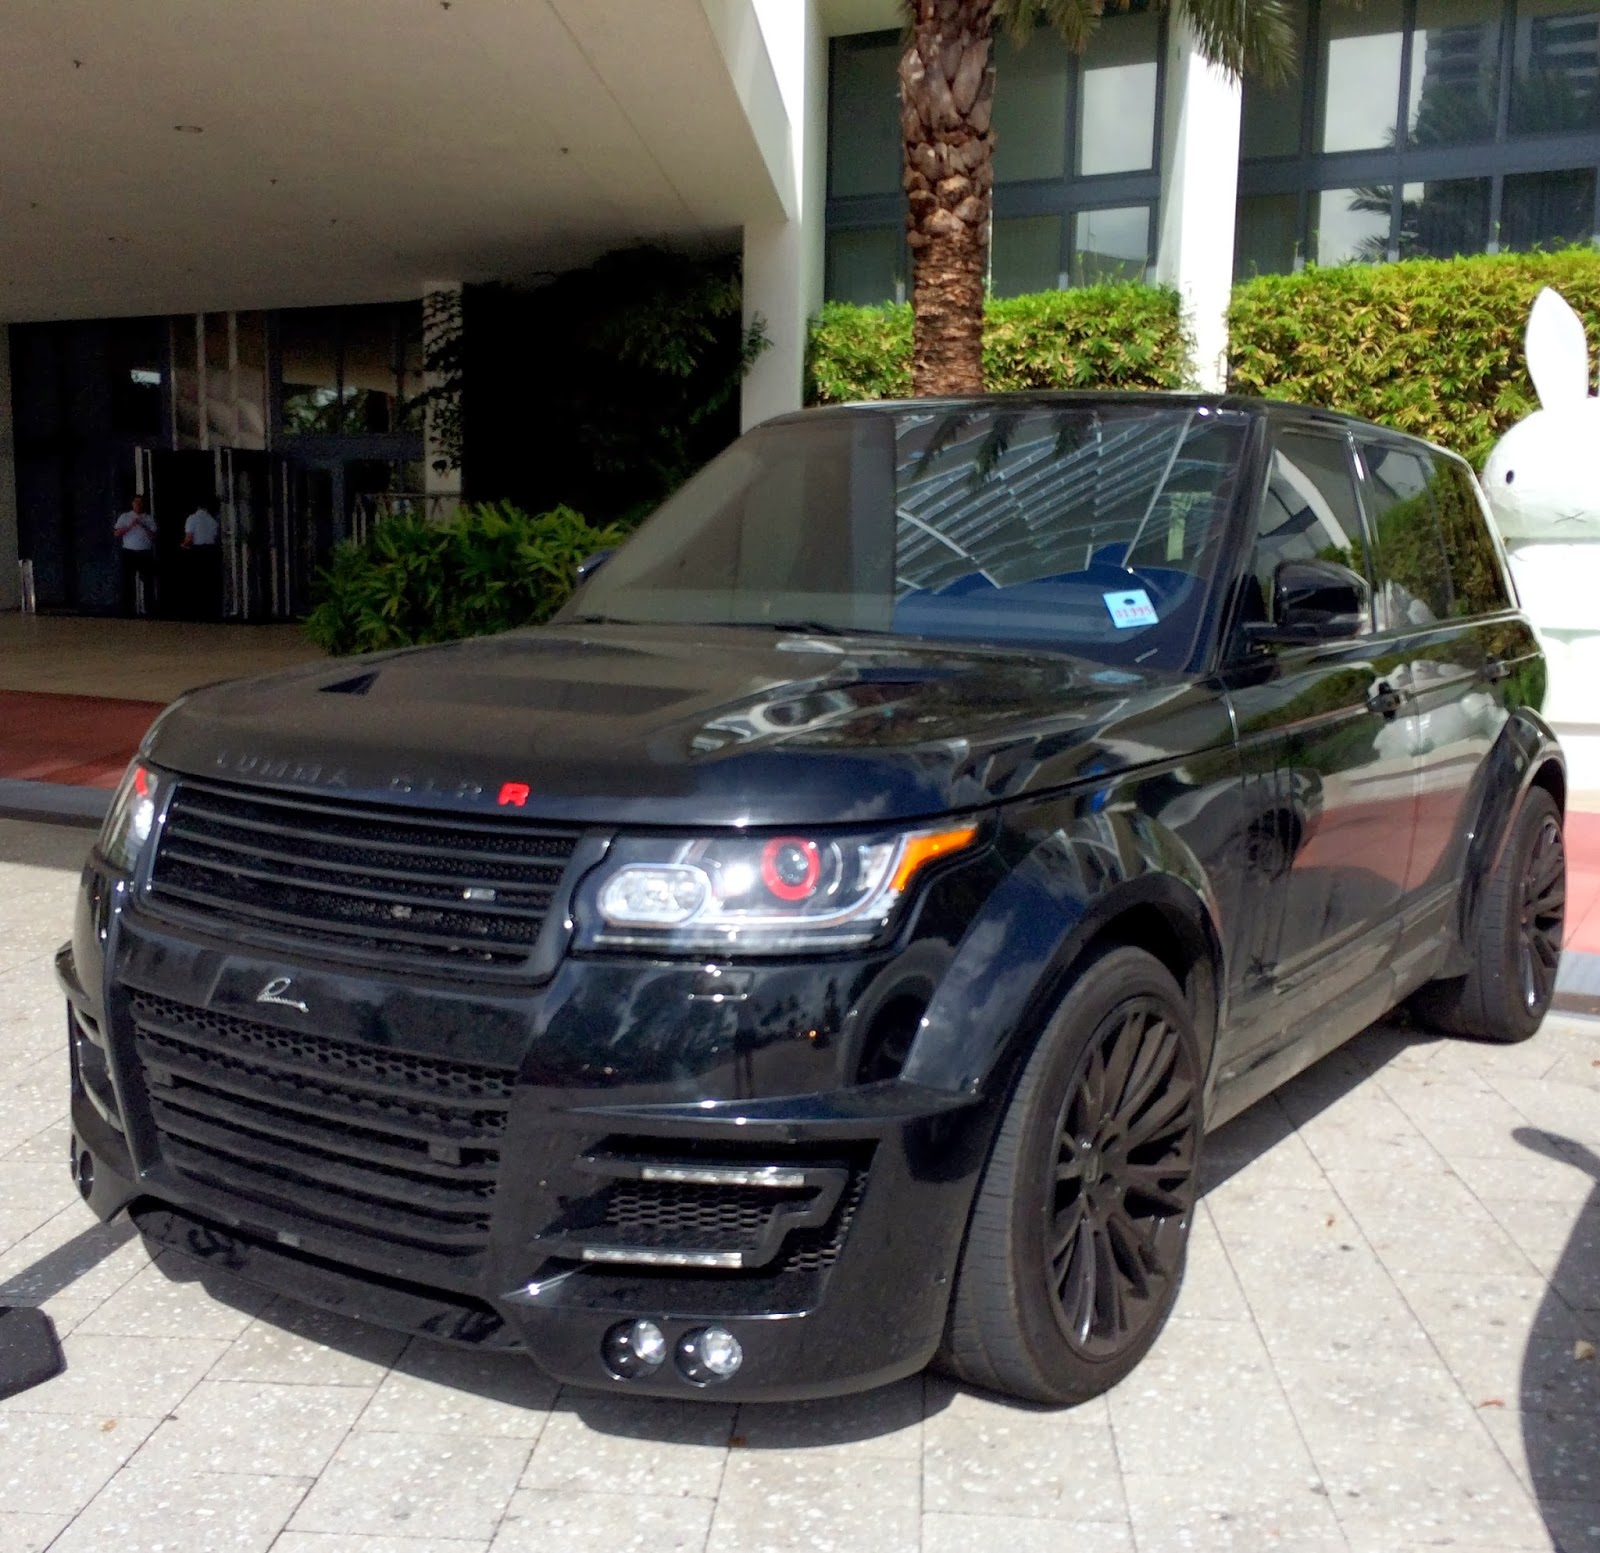 Range Rover Lumma Clr R Exotic Cars On The Streets Of Miami